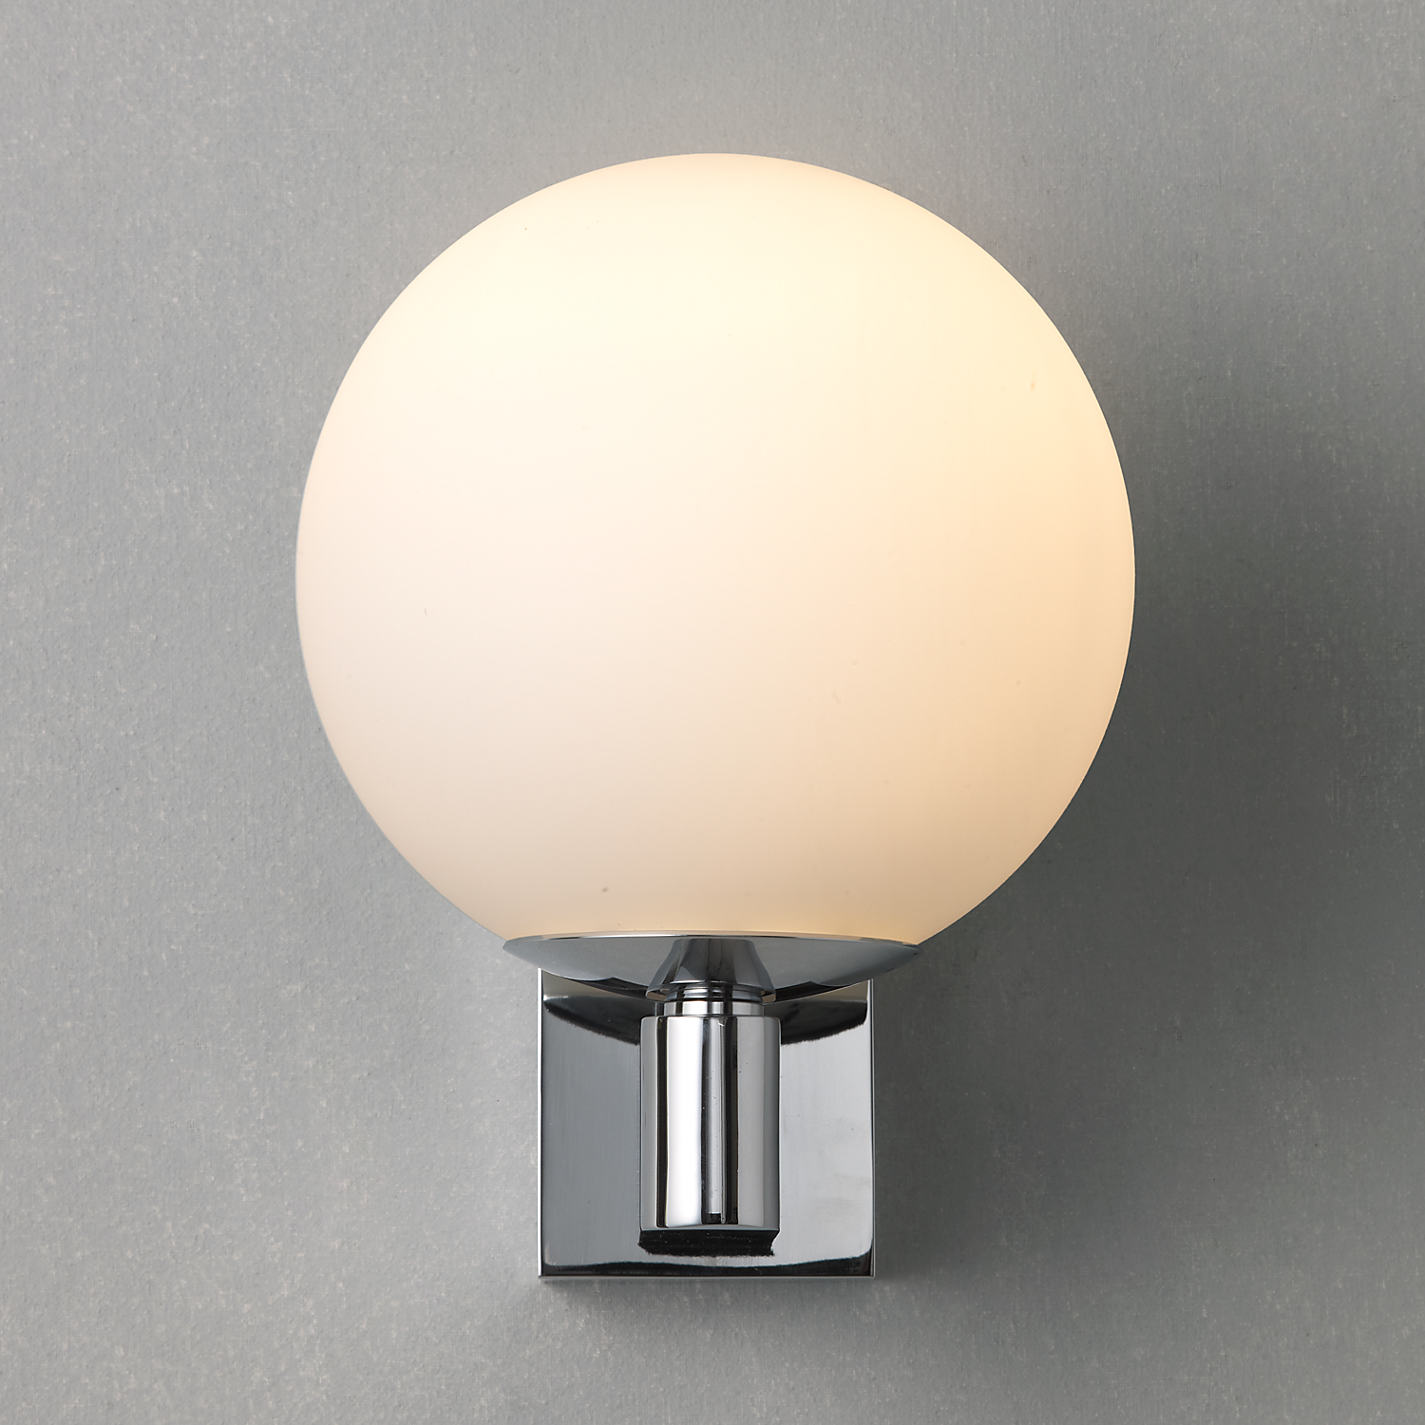 Bathroom Wall Lights John Lewis buy astro sagara bathroom wall light | john lewis